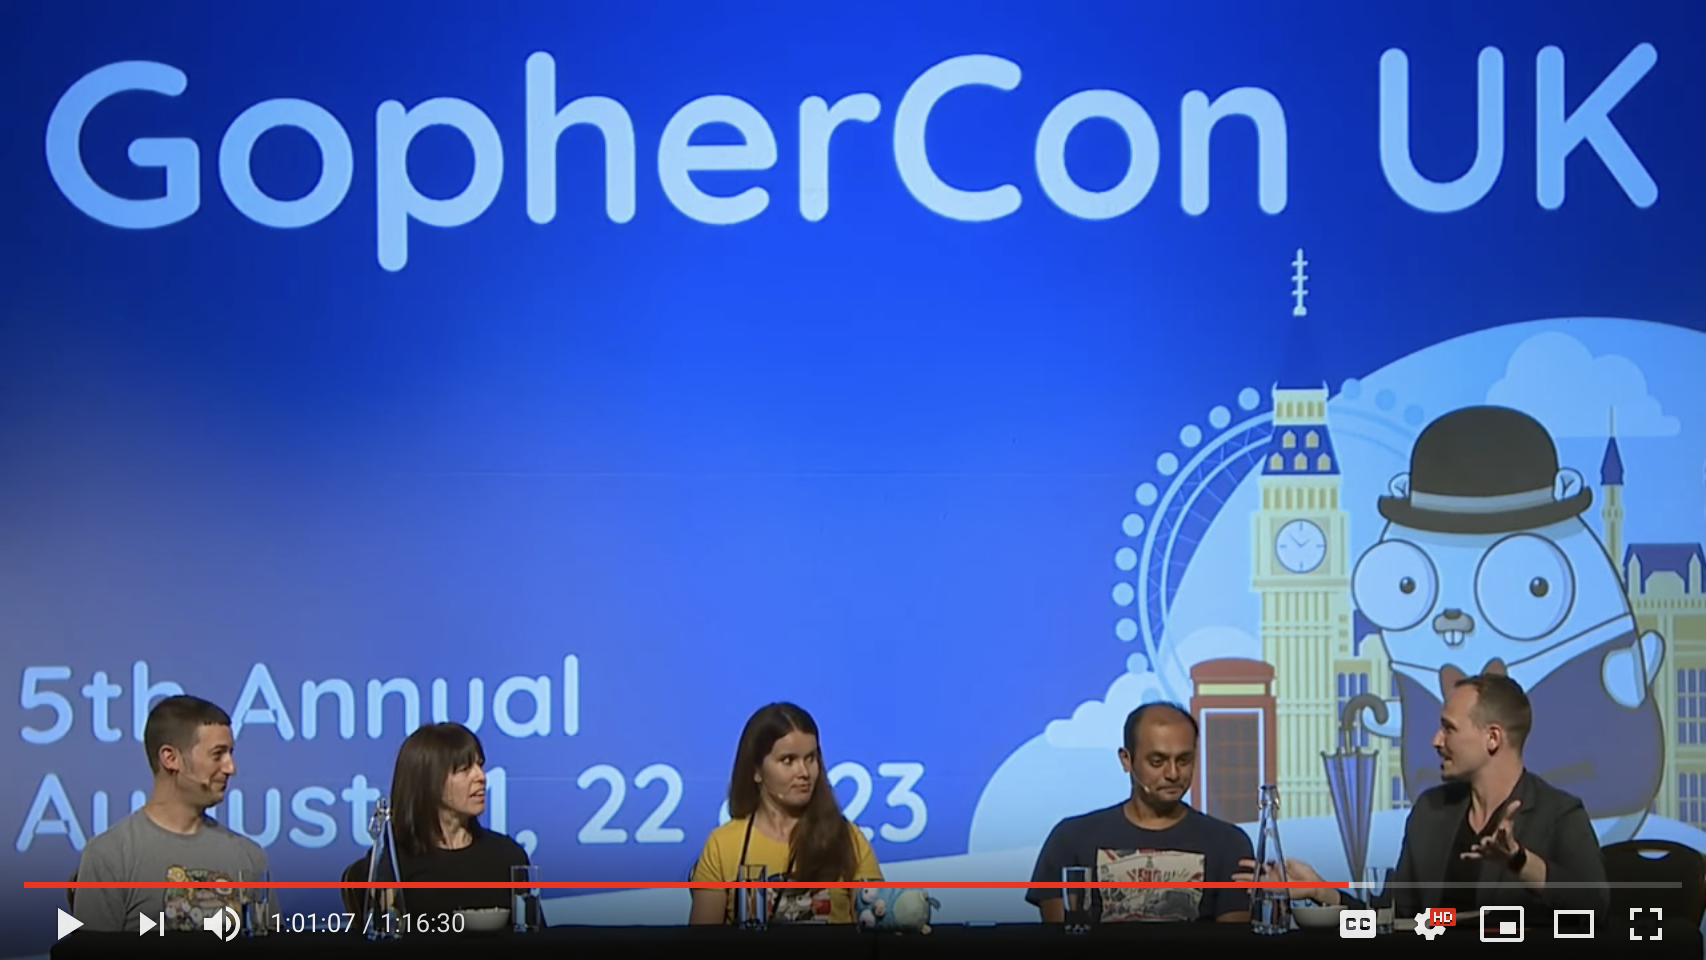 gotime-at-gophercon-uk.png